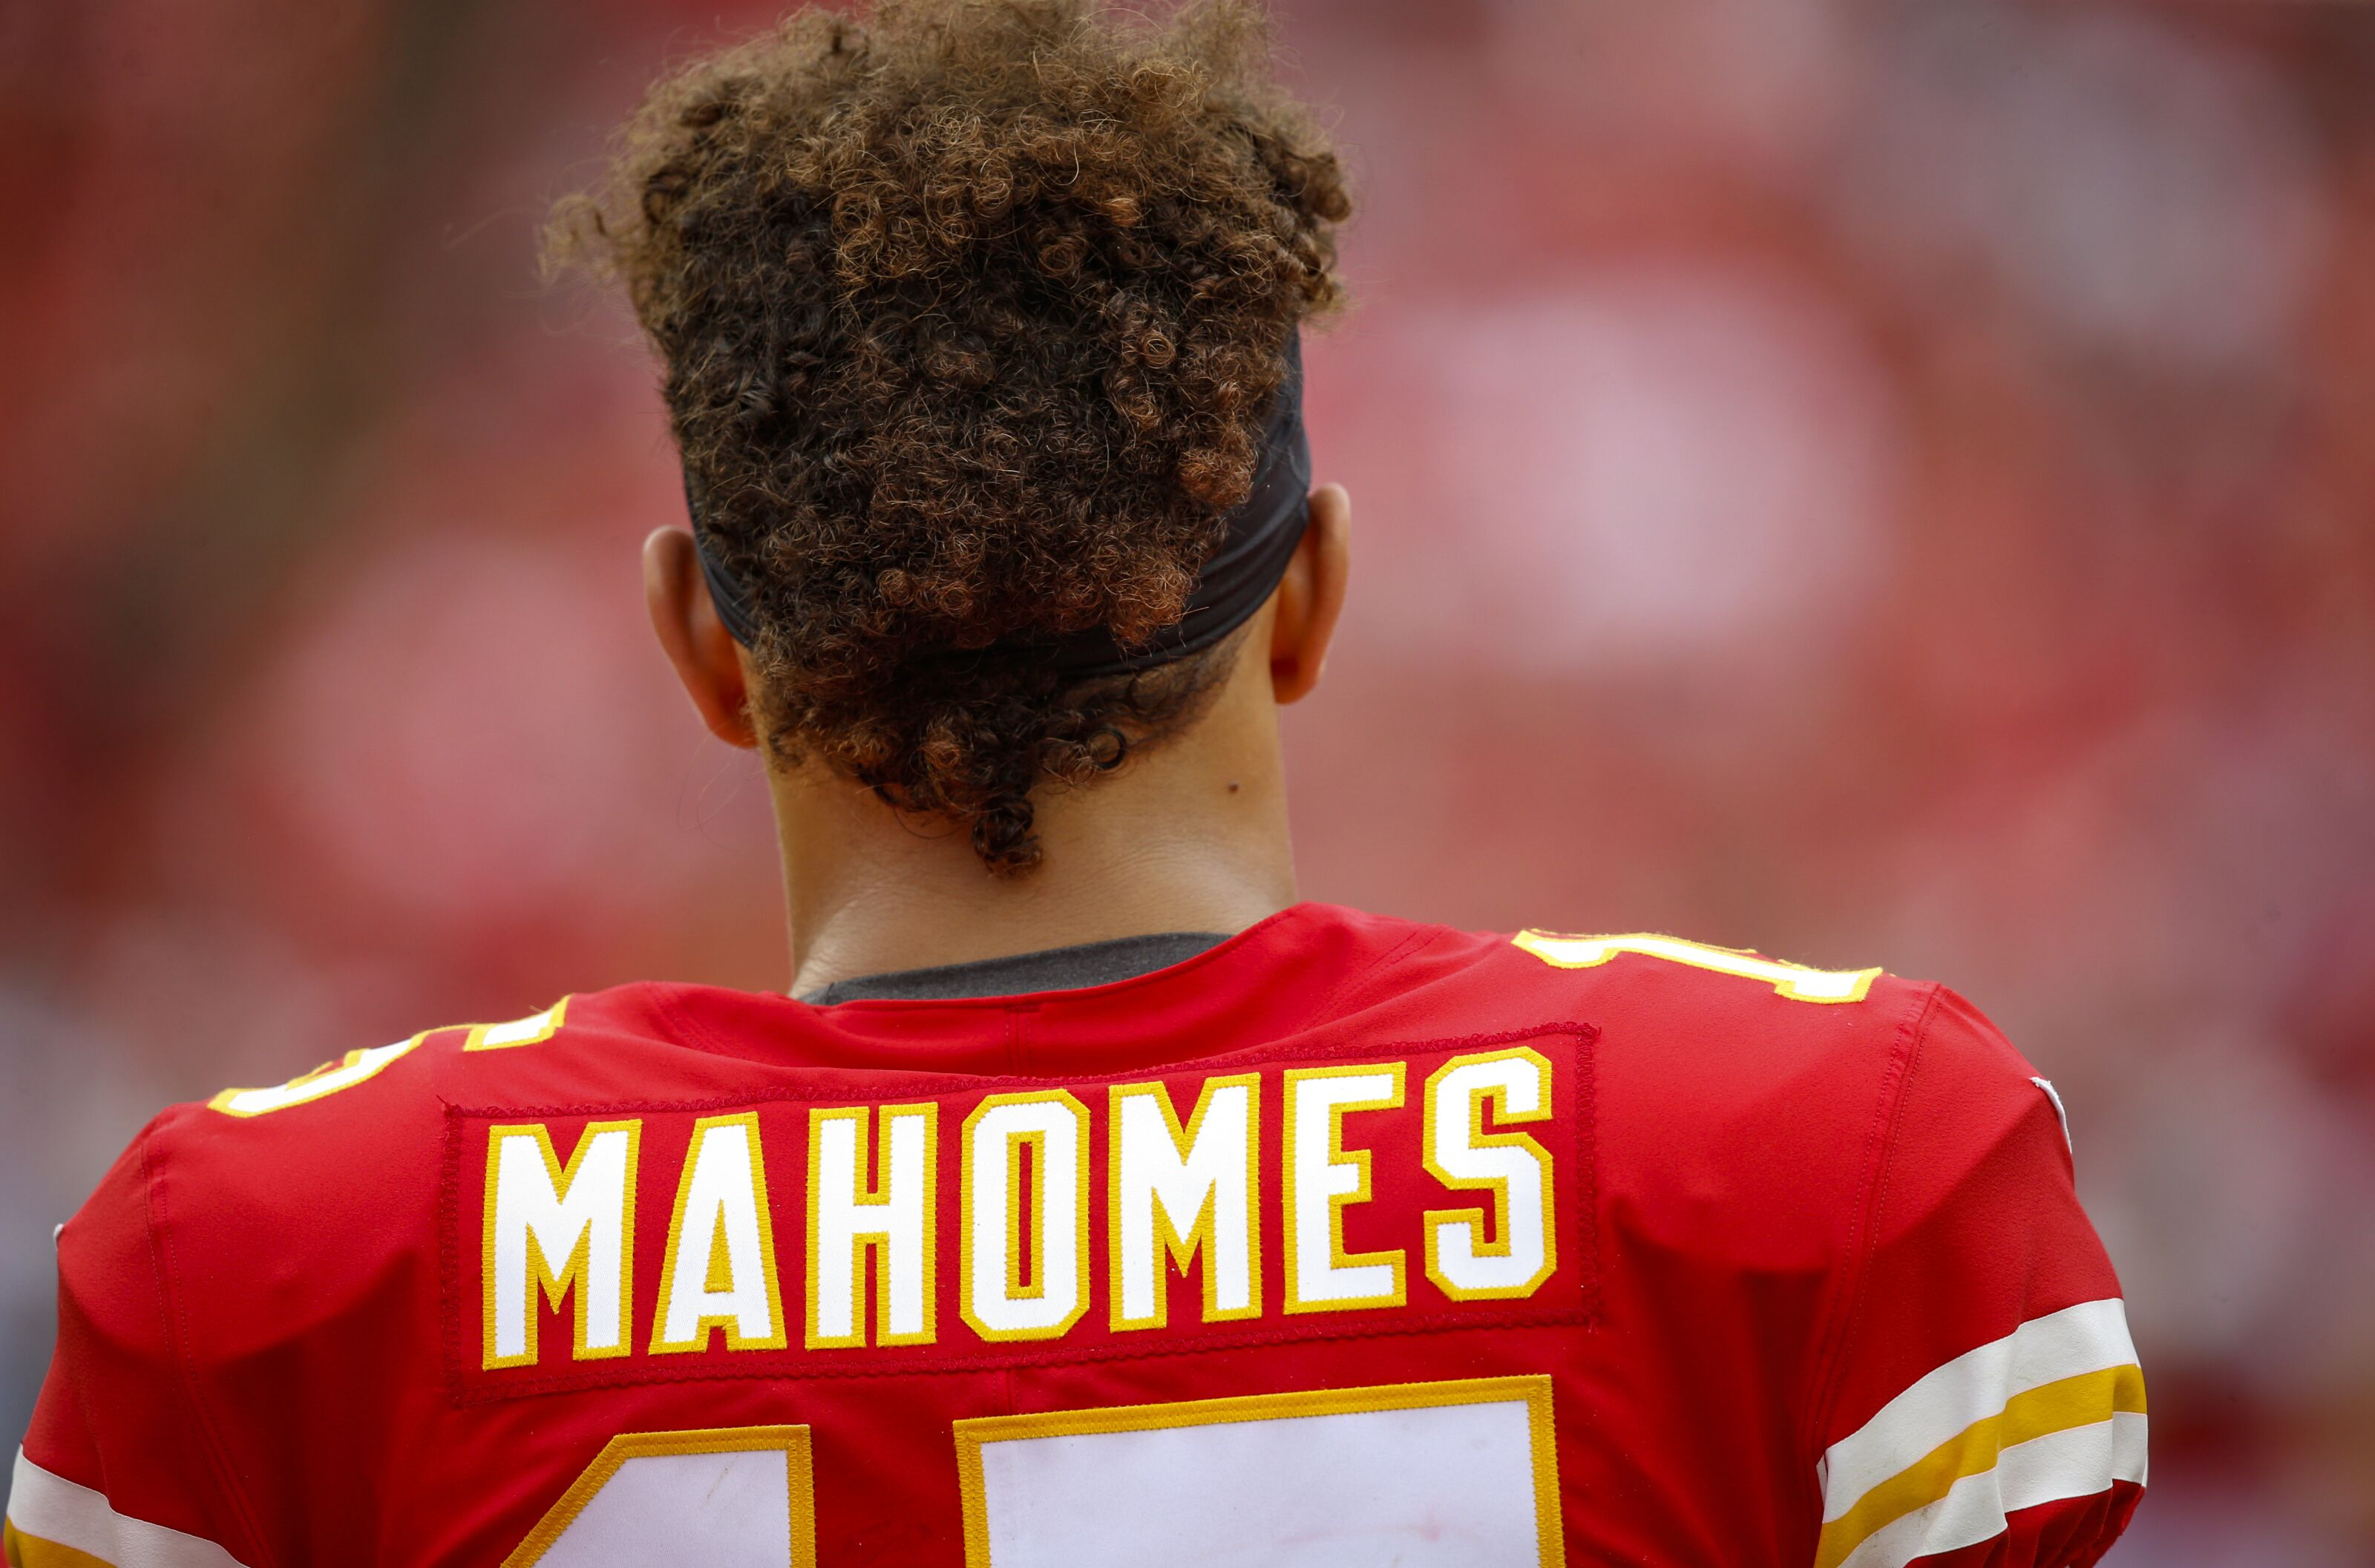 Patrick Mahomes Haircut Called Haircut Trends